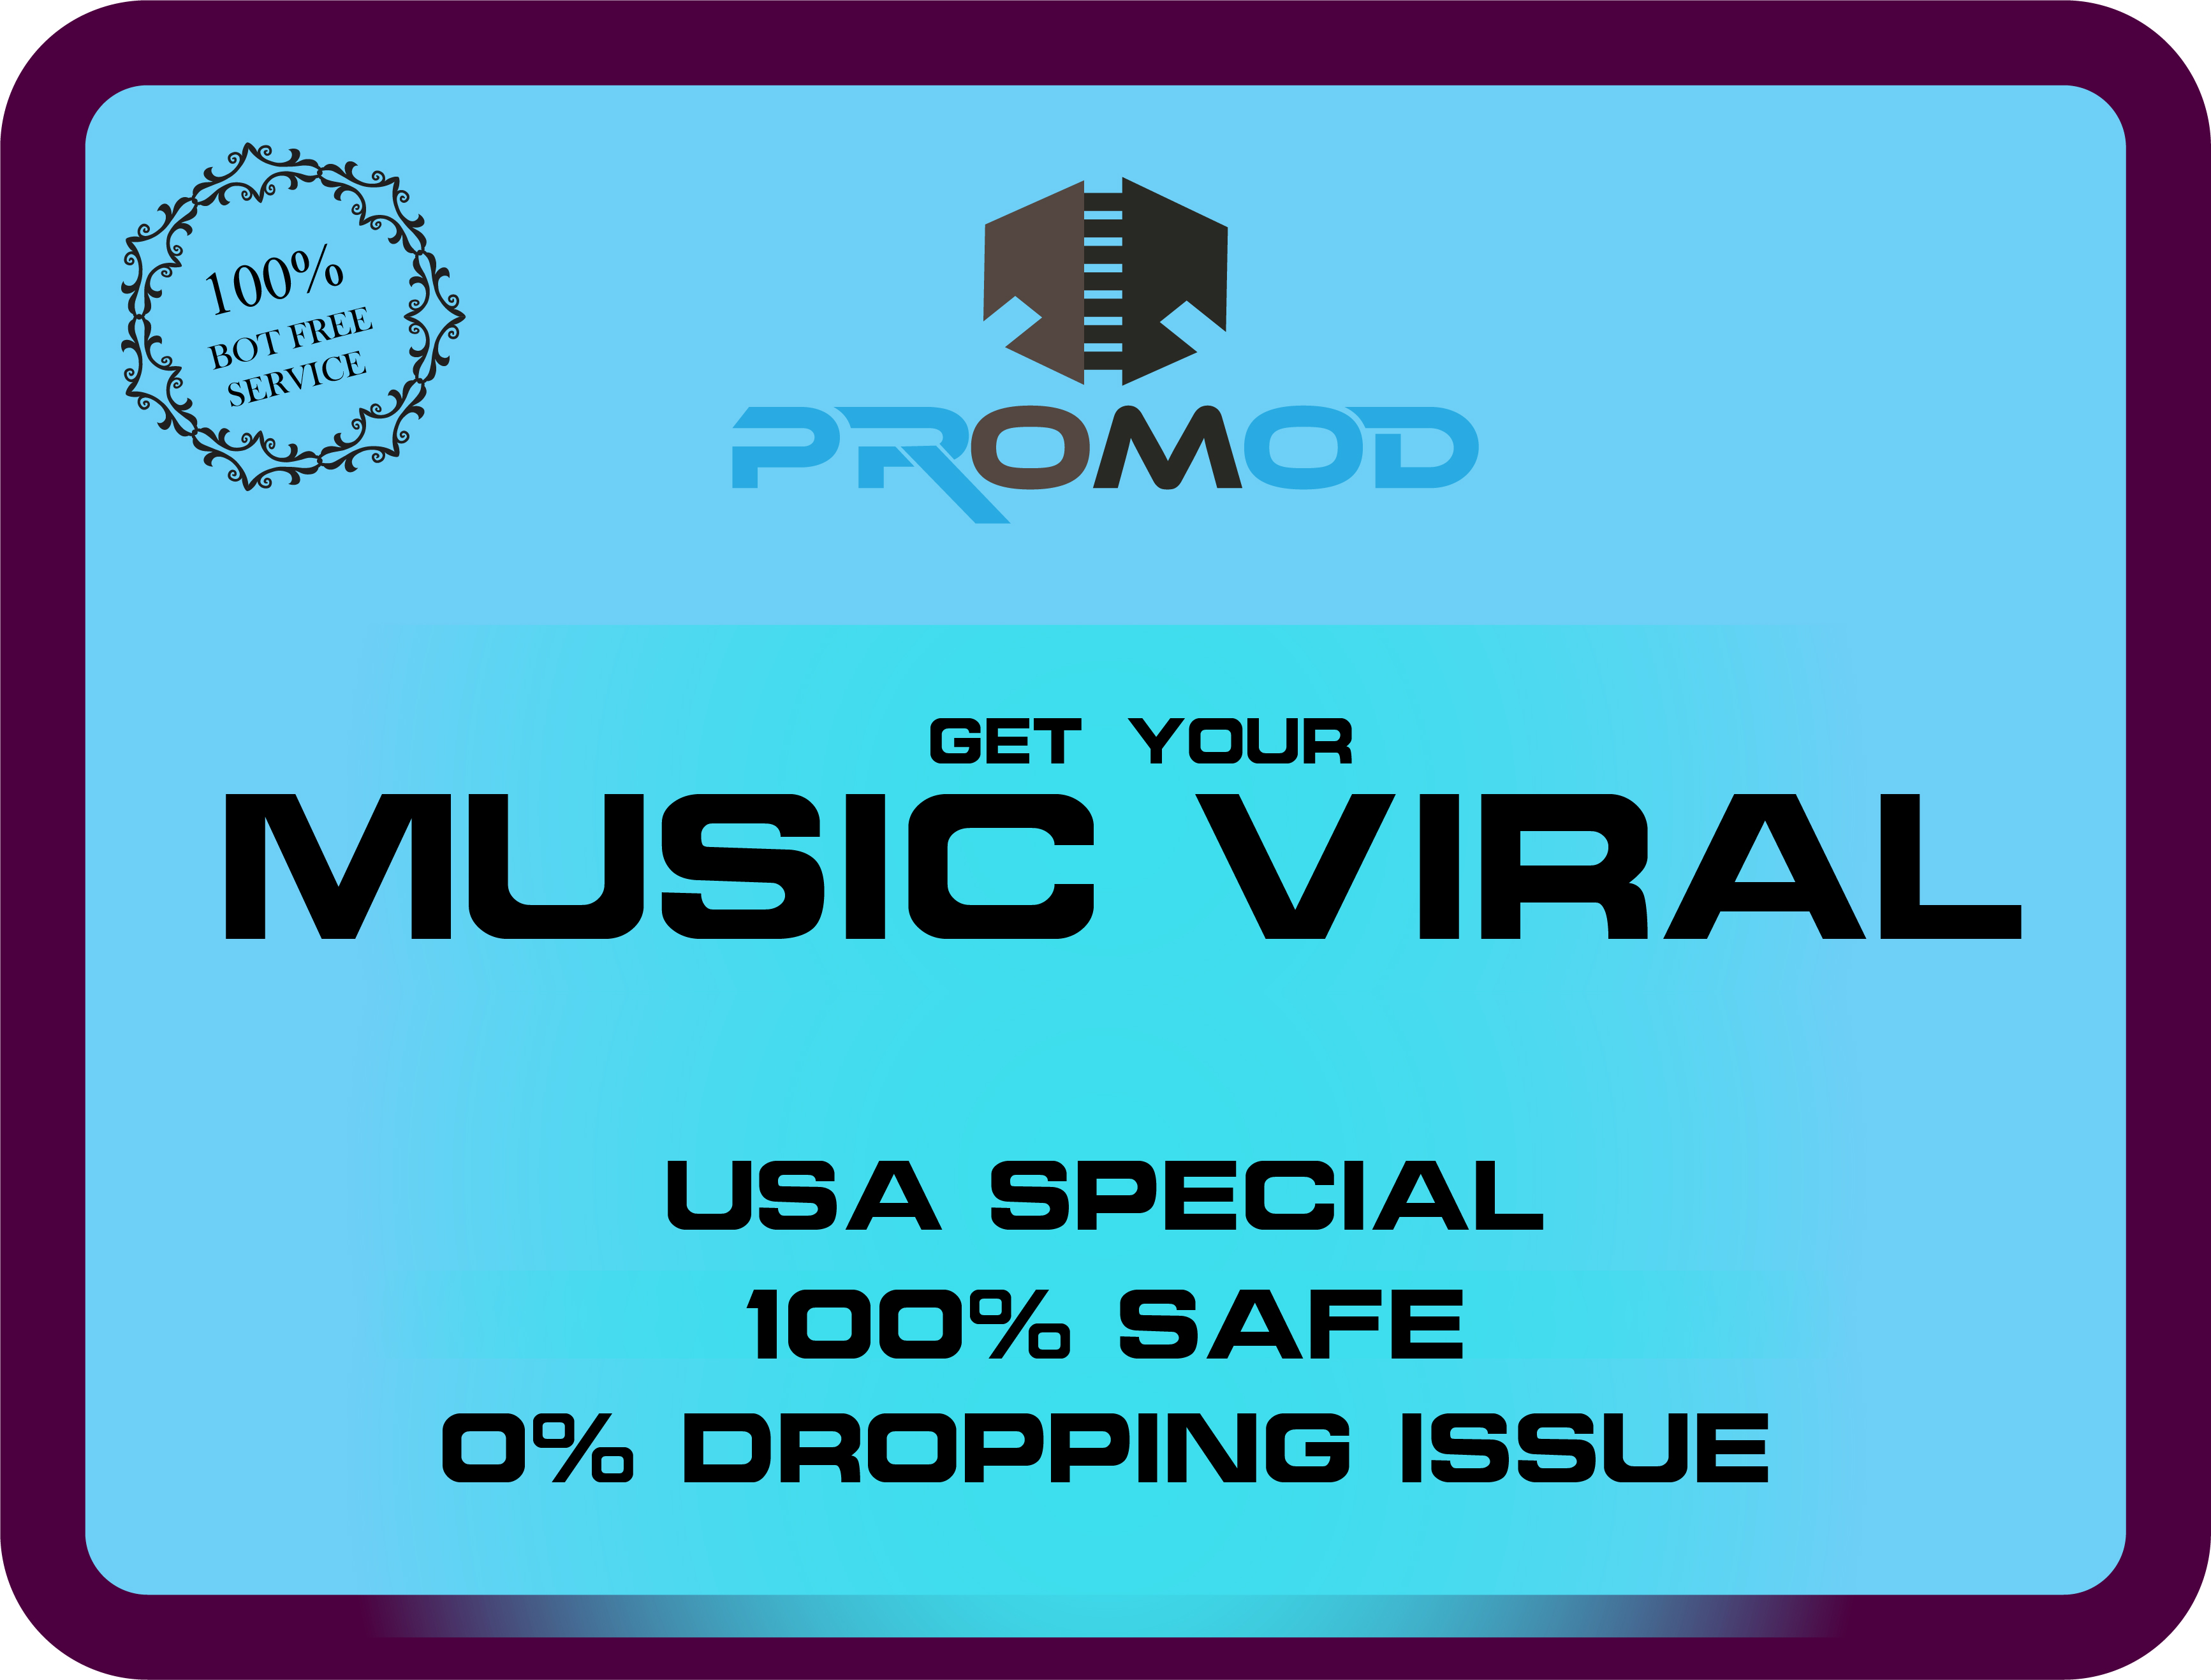 USA special. Viral and Safe Music Promotion